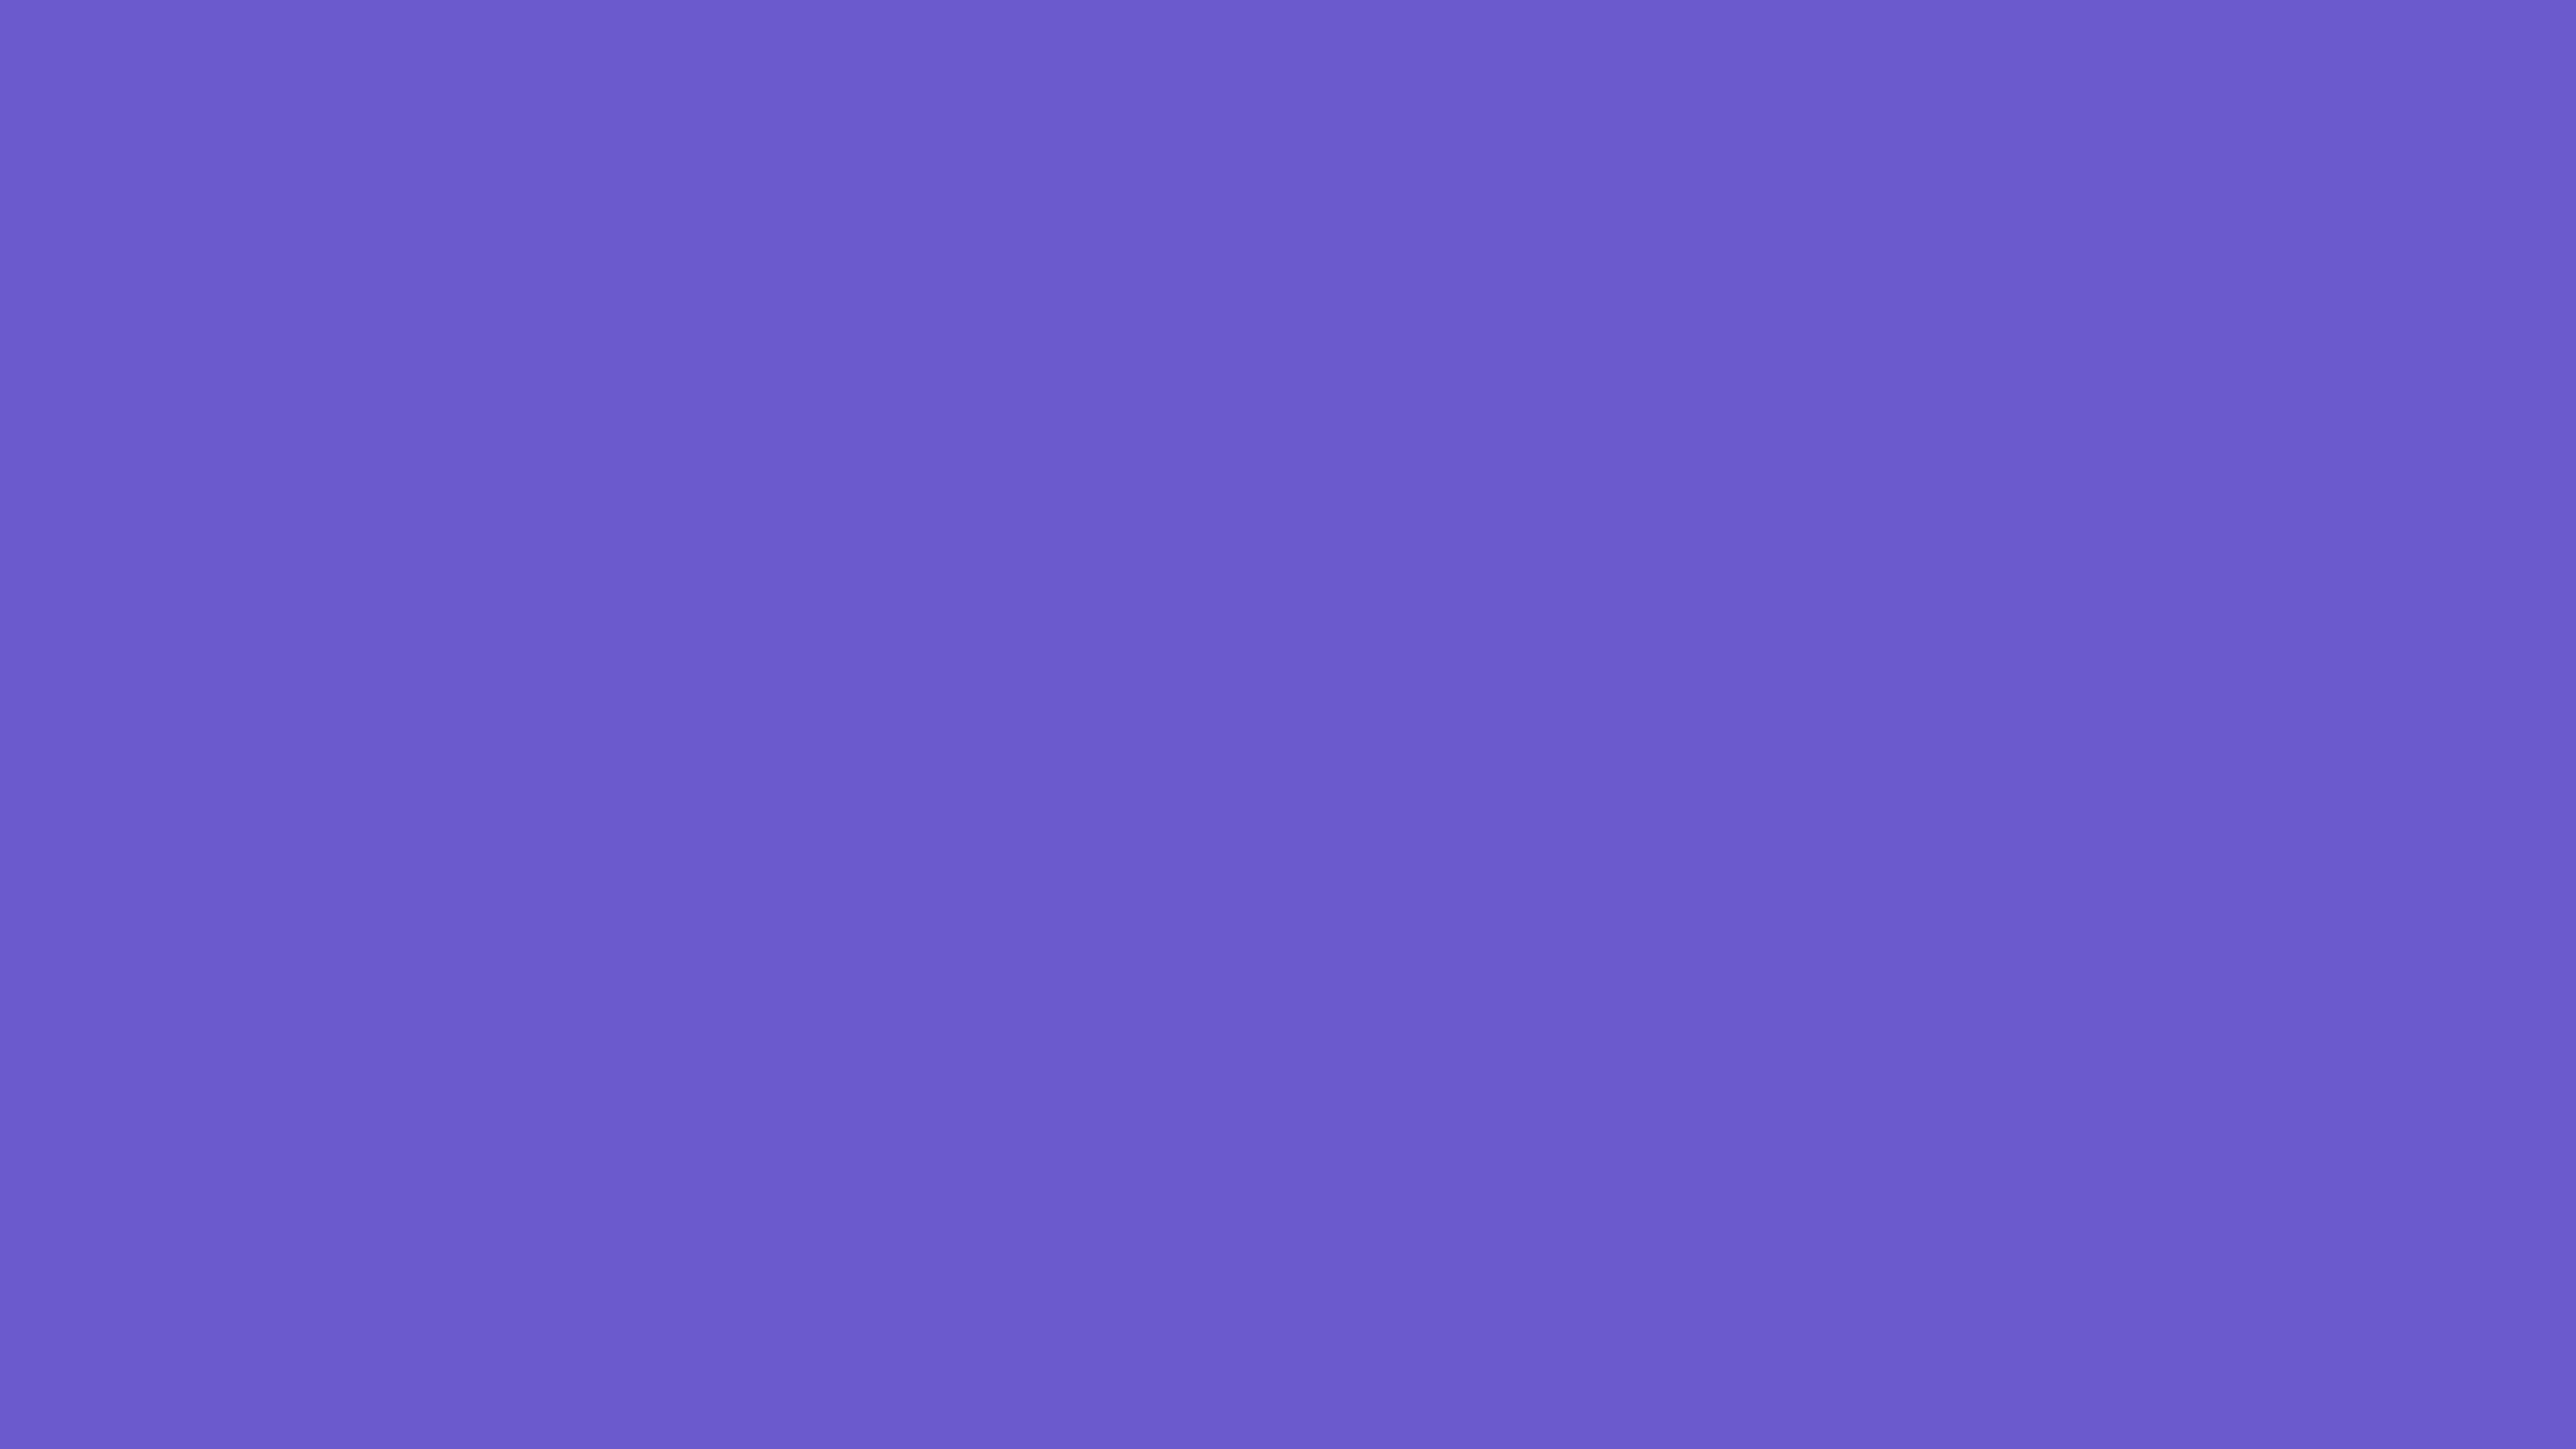 4096x2304 Slate Blue Solid Color Background